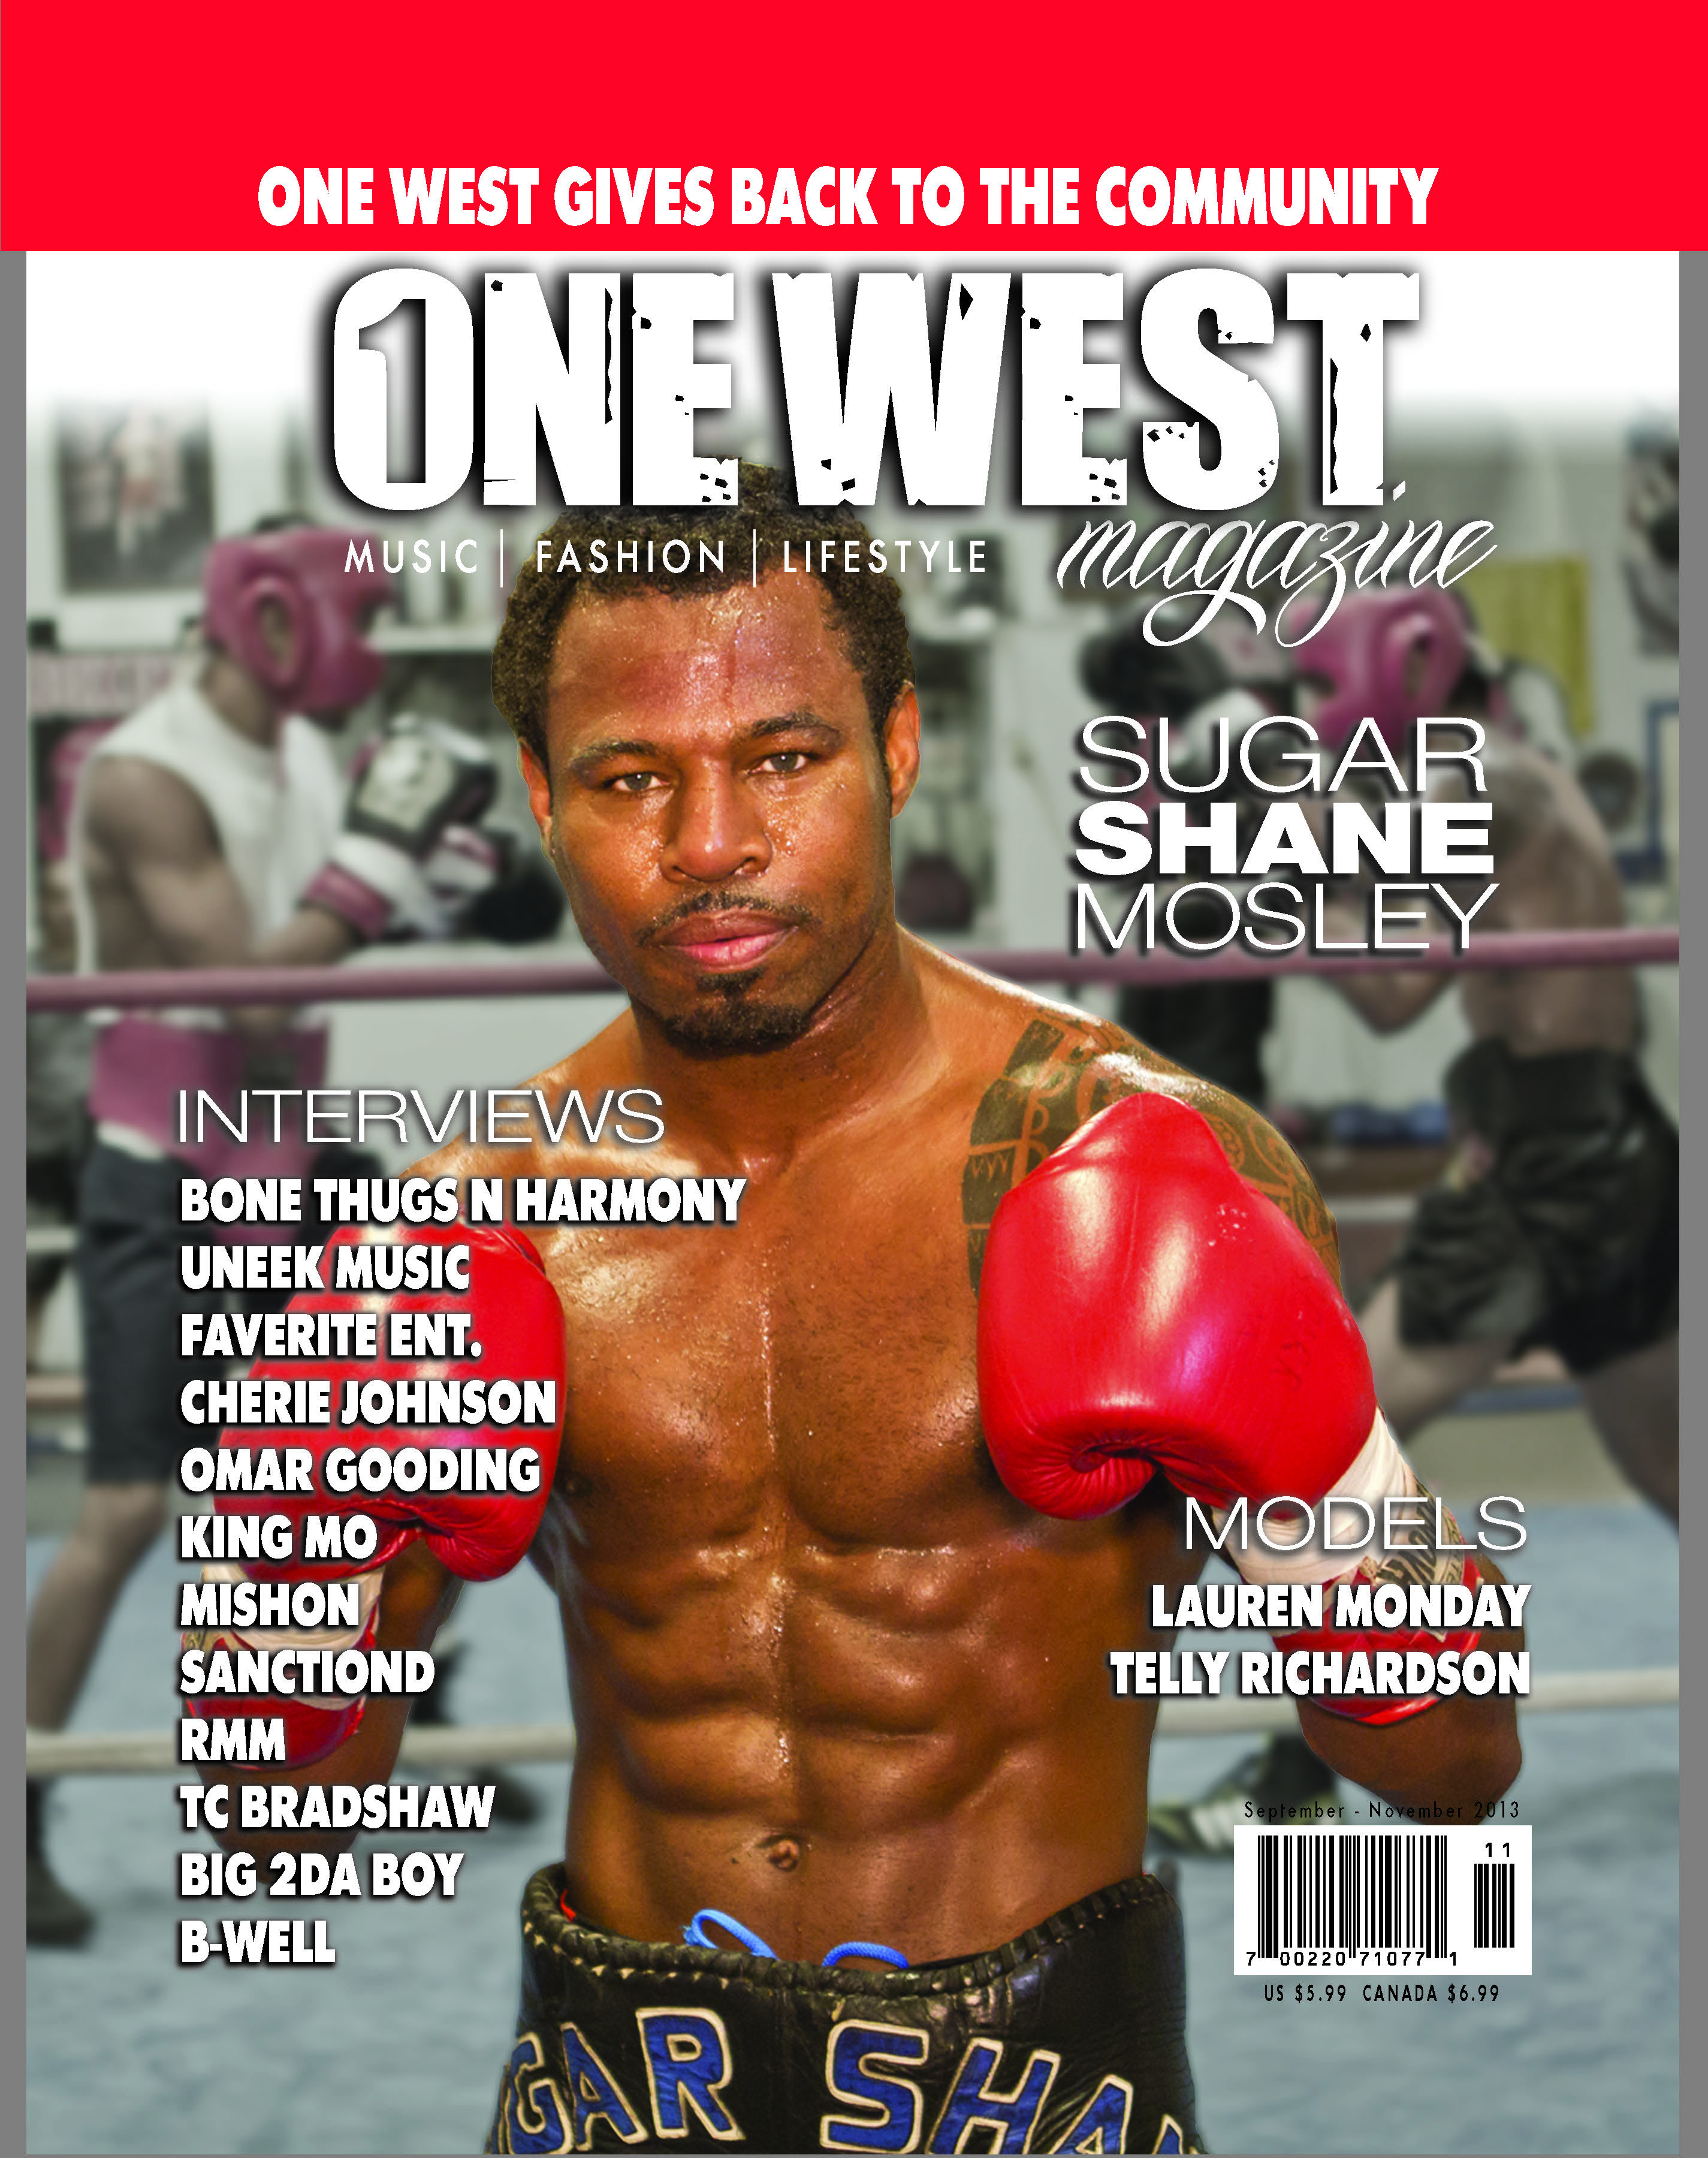 One West Magazine - Sugar Shane Mosley Cover (September to November 2013)